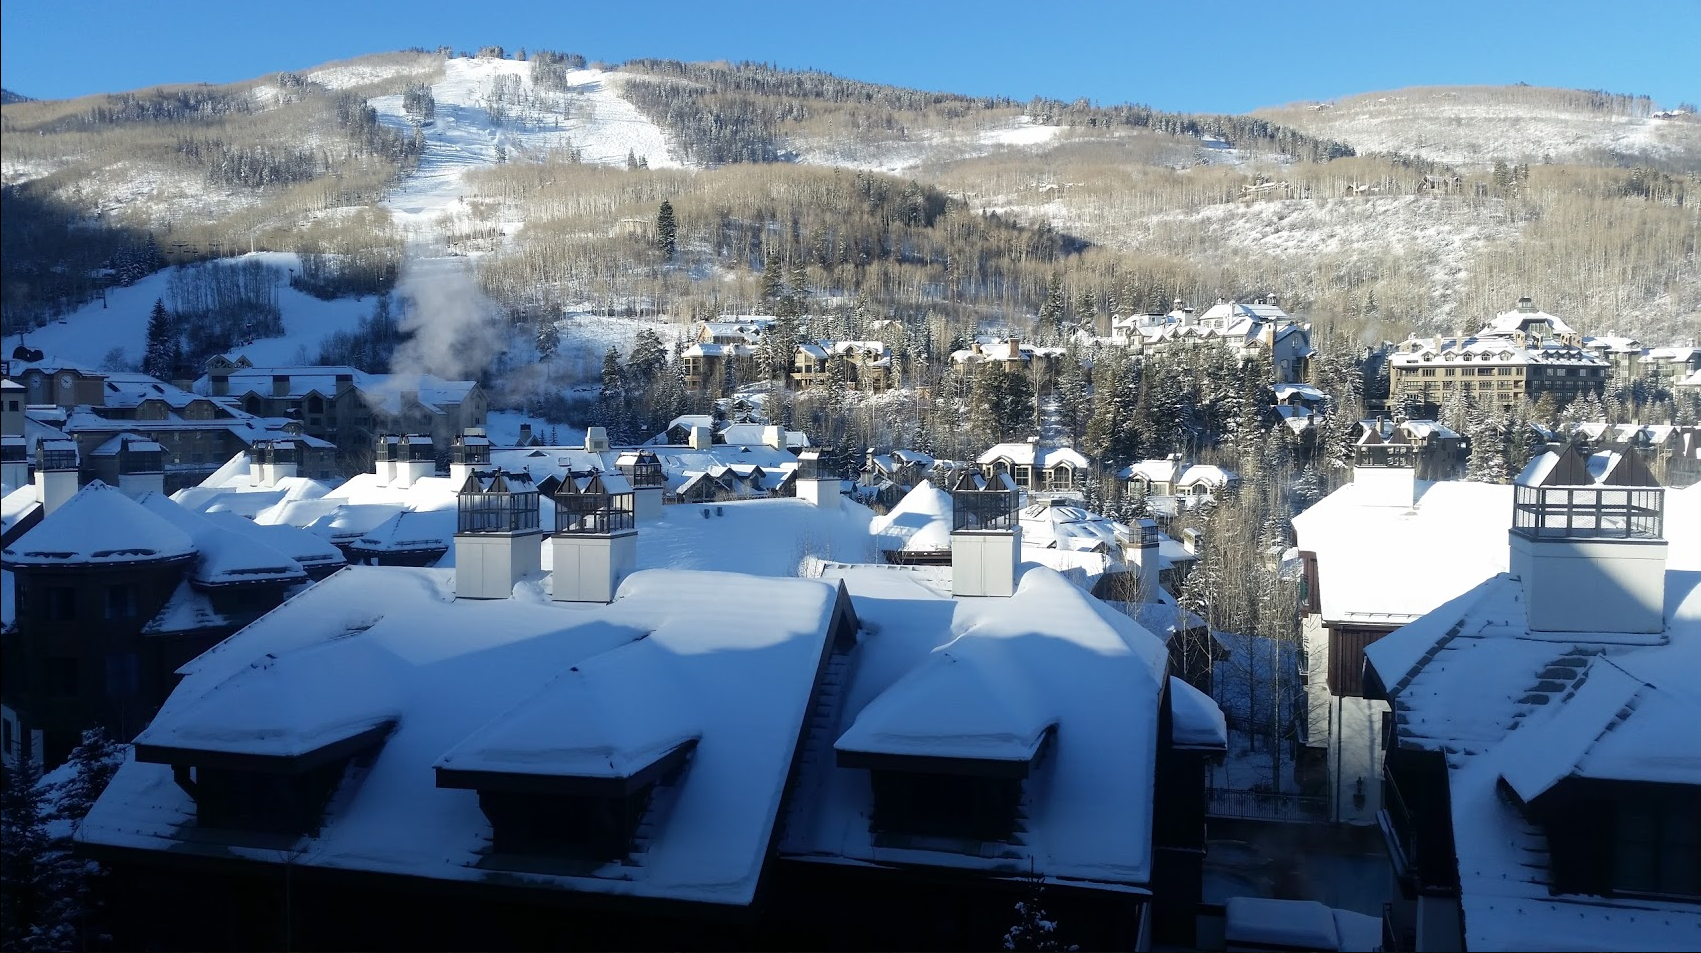 St James Place, Beaver Creek, Avon Colorado Luxury Winter Skiing Best Balcony Views Week 49 and 50